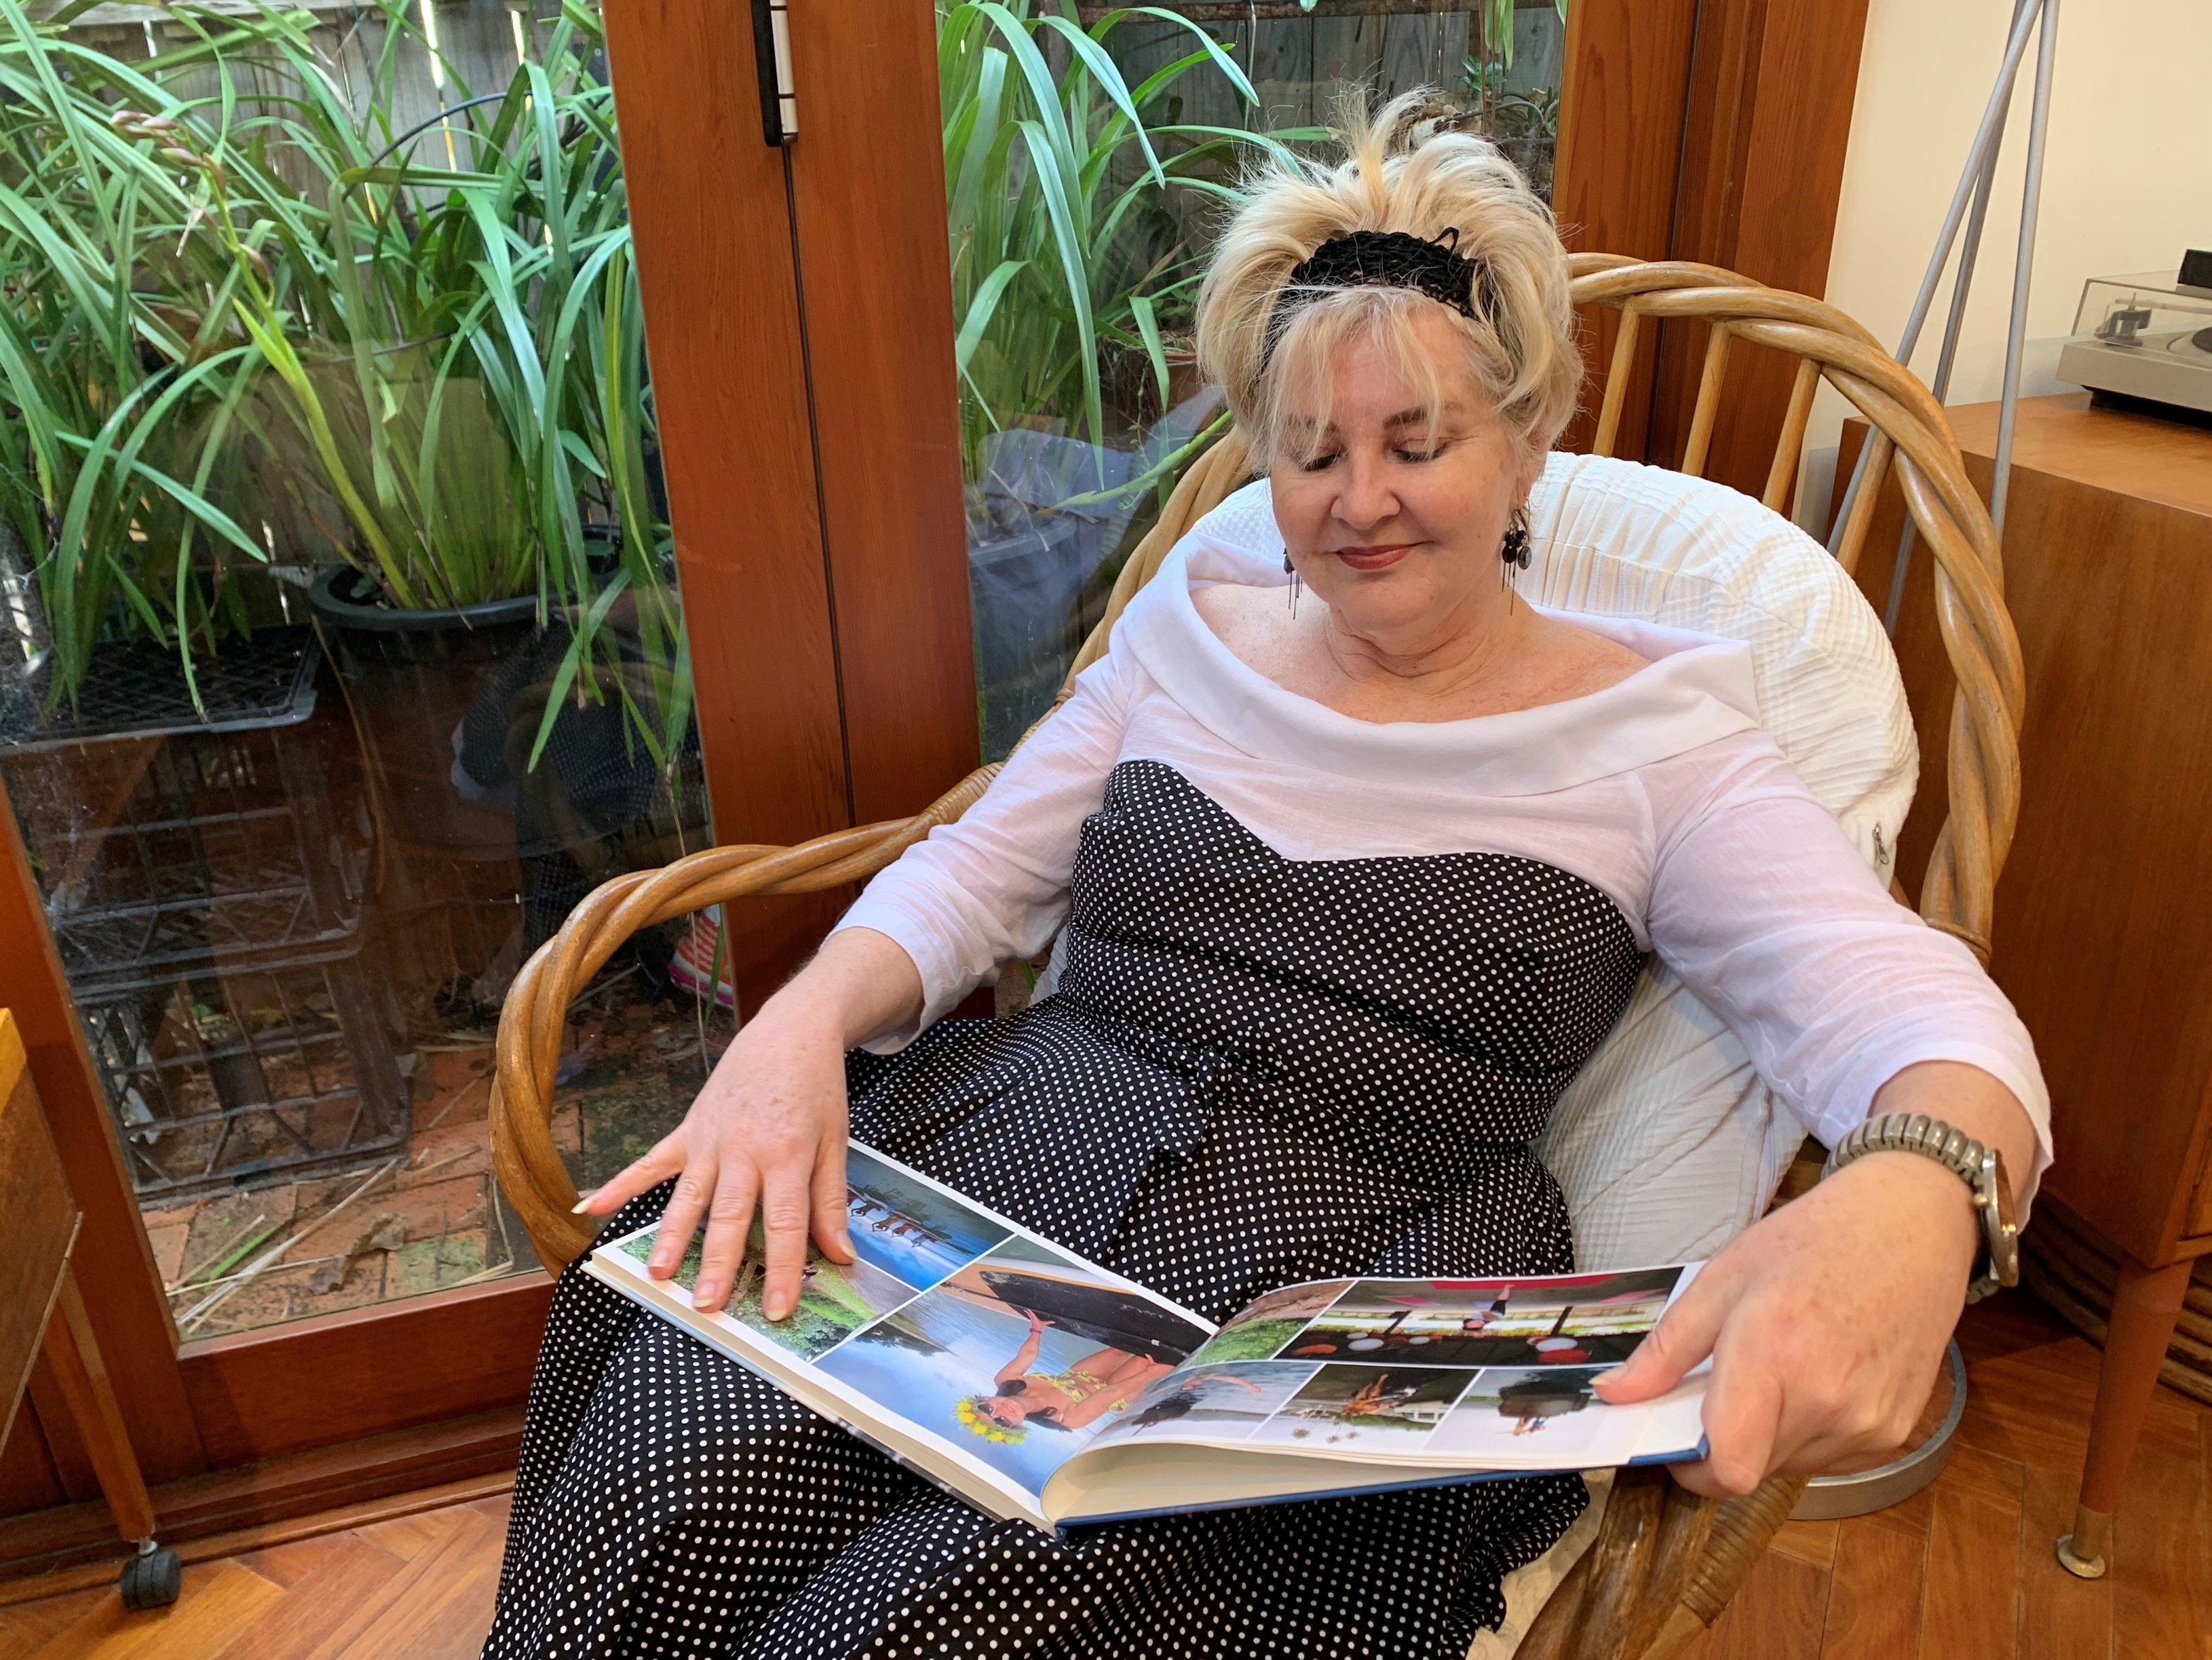 Retiree Nicole Miller looks through her cruise photo album as Australia's conservative approach to reopening and slow rollout of coronavirus disease (COVID-19) vaccinations has adversely affected the tourism industry, in Sydney, Australia, July 6, 2021. REUTERS/Stefica Nicol Bikes